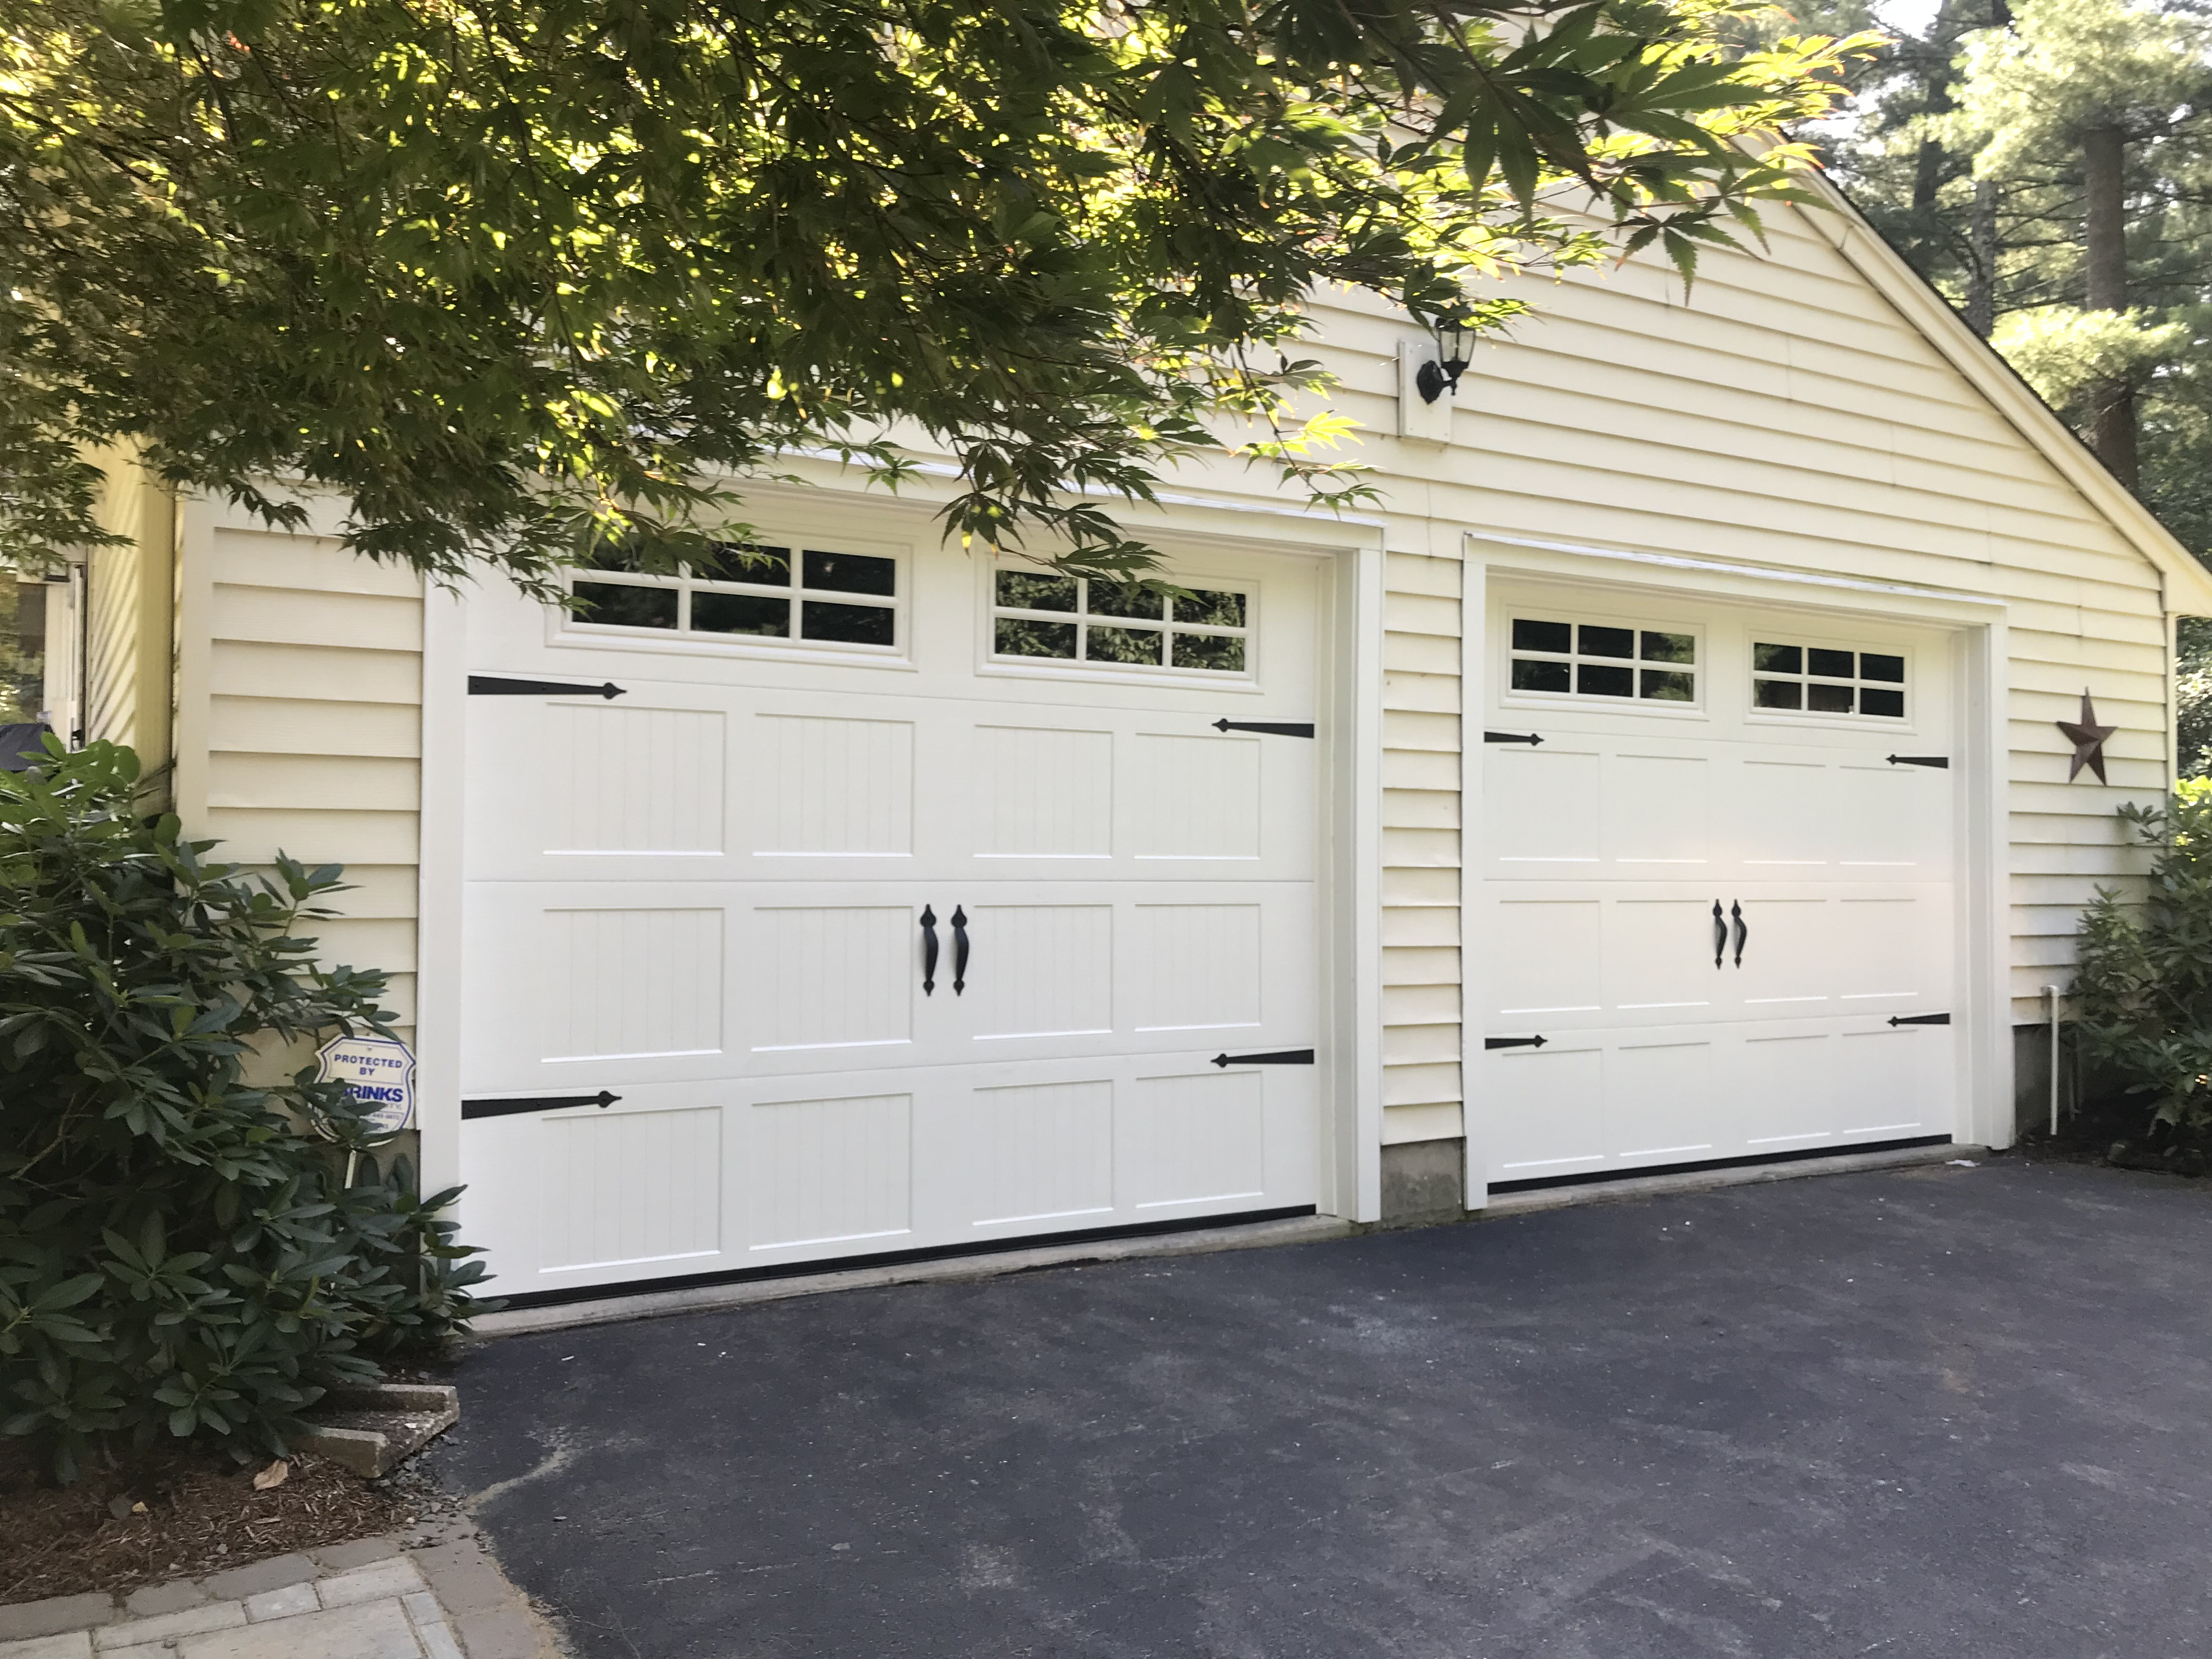 Convenient and secure garage doors for your South Windsor home that work every time